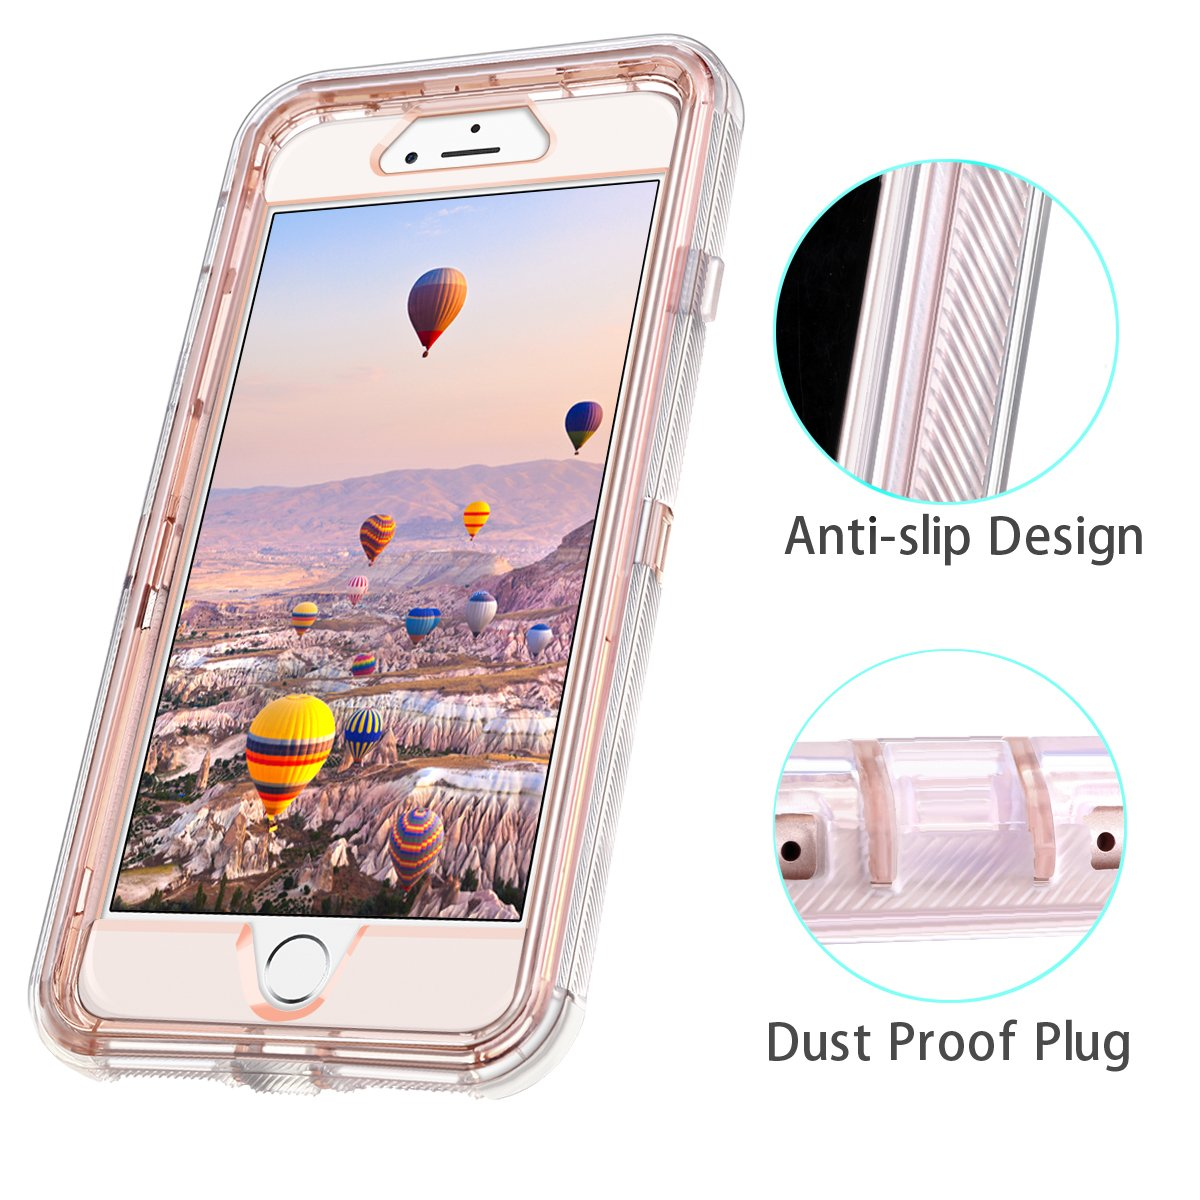 b1d54bd9f7 Coolden iPhone 8 Plus Case, iPhone 7 Plus Case, 3D Glitter Sparkle Dual  Layer Quicksand Liquid Cover Shockproof Bumper Anti-Drop PC Frame + TPU  Back for ...